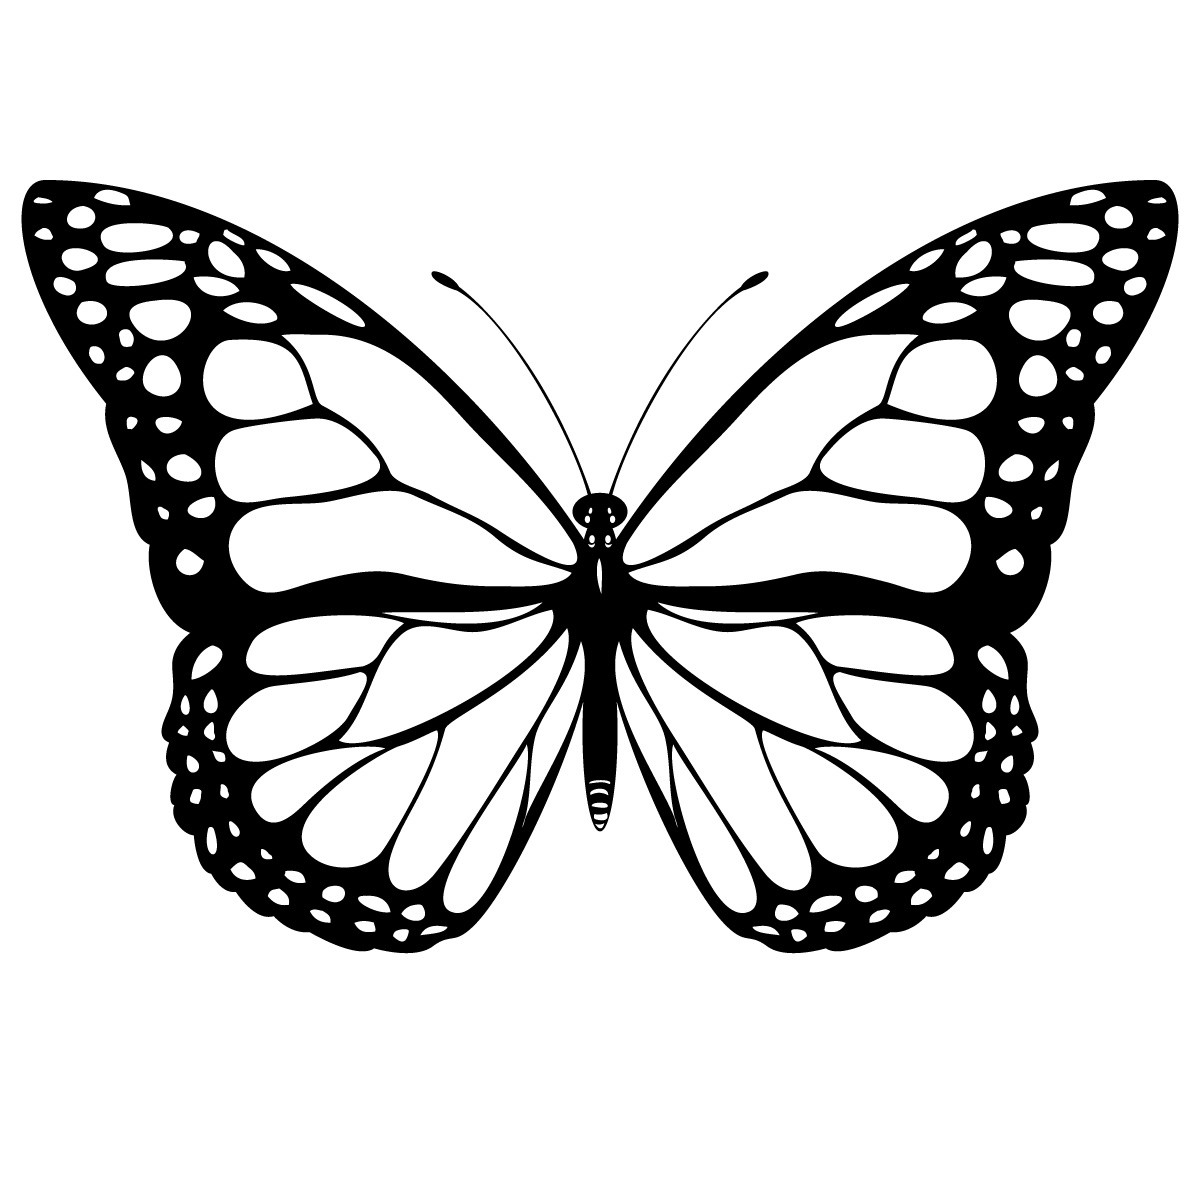 10 Cool Butterfly Drawings Free Cliparts That You Can Download To You